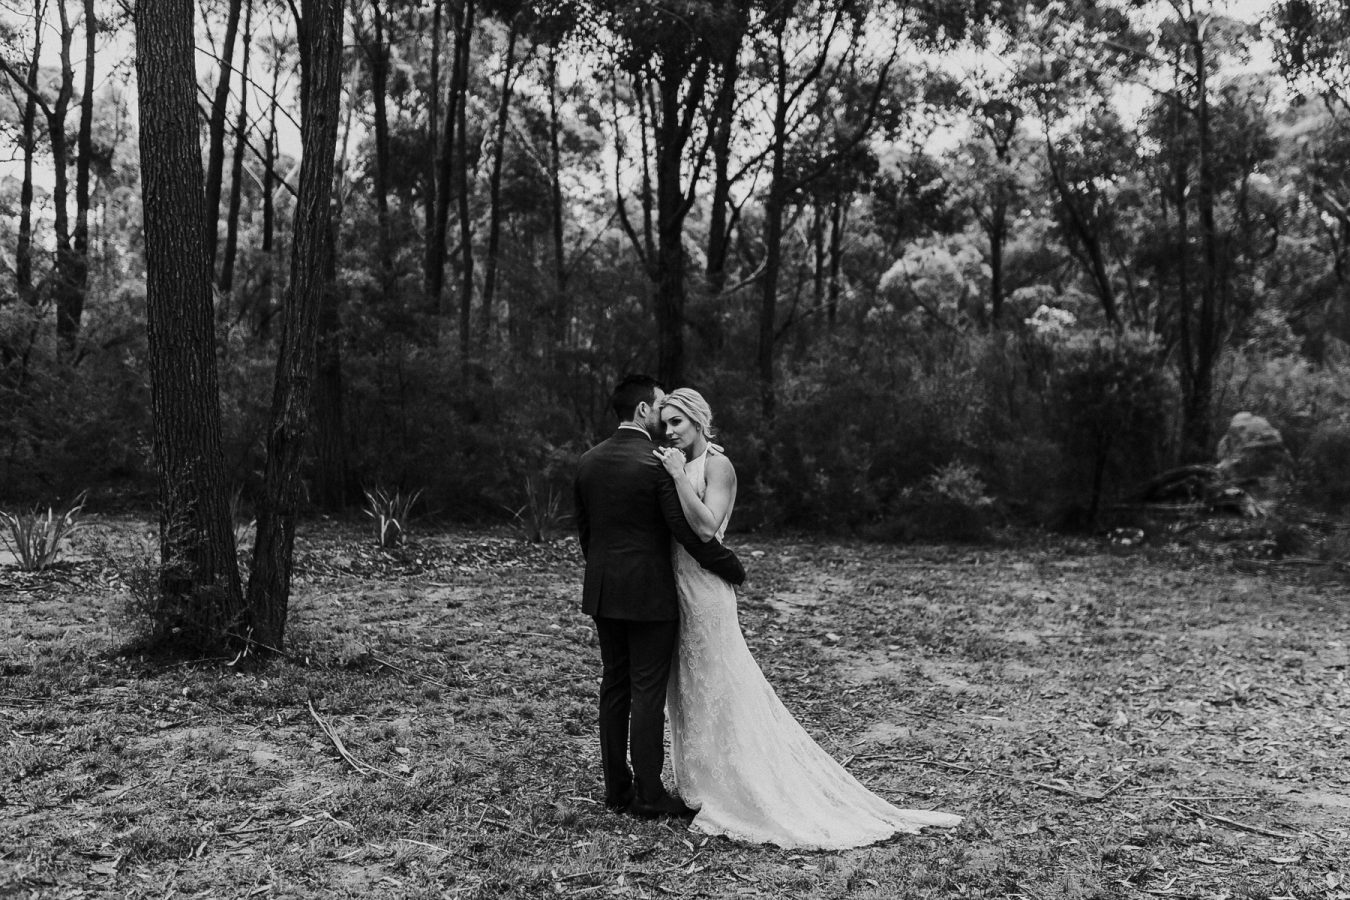 Courtney-Josh-Growwild-Bowral-southernhighlans-Wedding-73